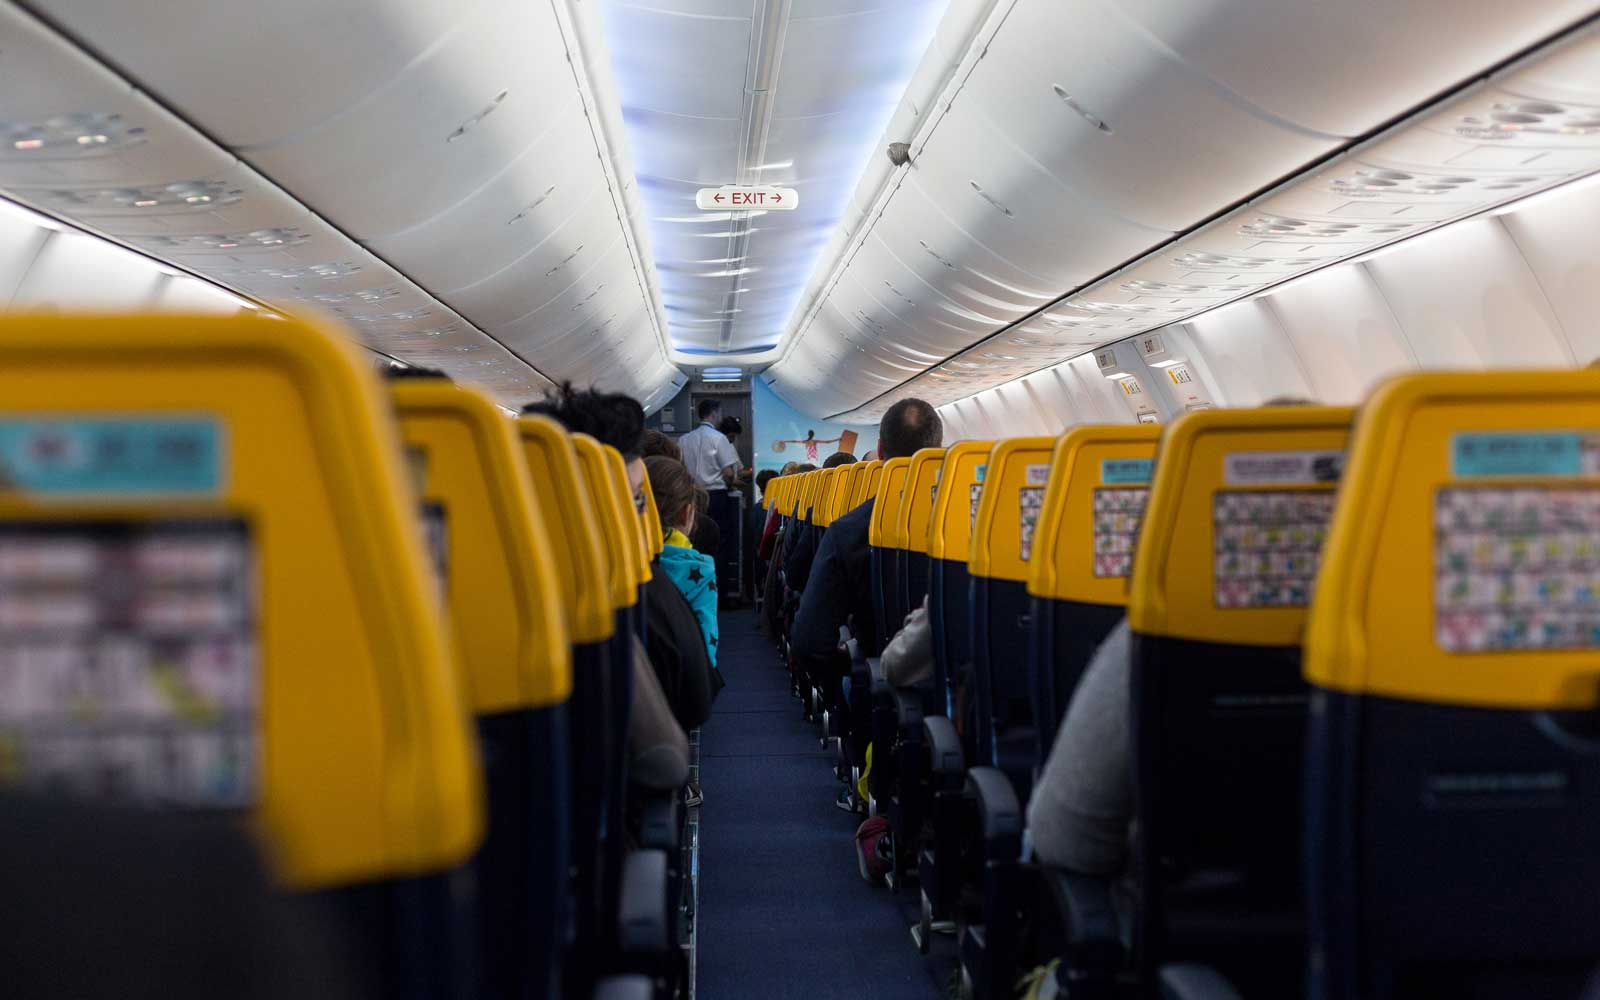 Ryanair Boeing 737-800 (Sky Interior) plane to Gdansk in Poland on 11 April 2017 (Photo by Mateusz Wlodarczyk/NurPhoto via Getty Images)